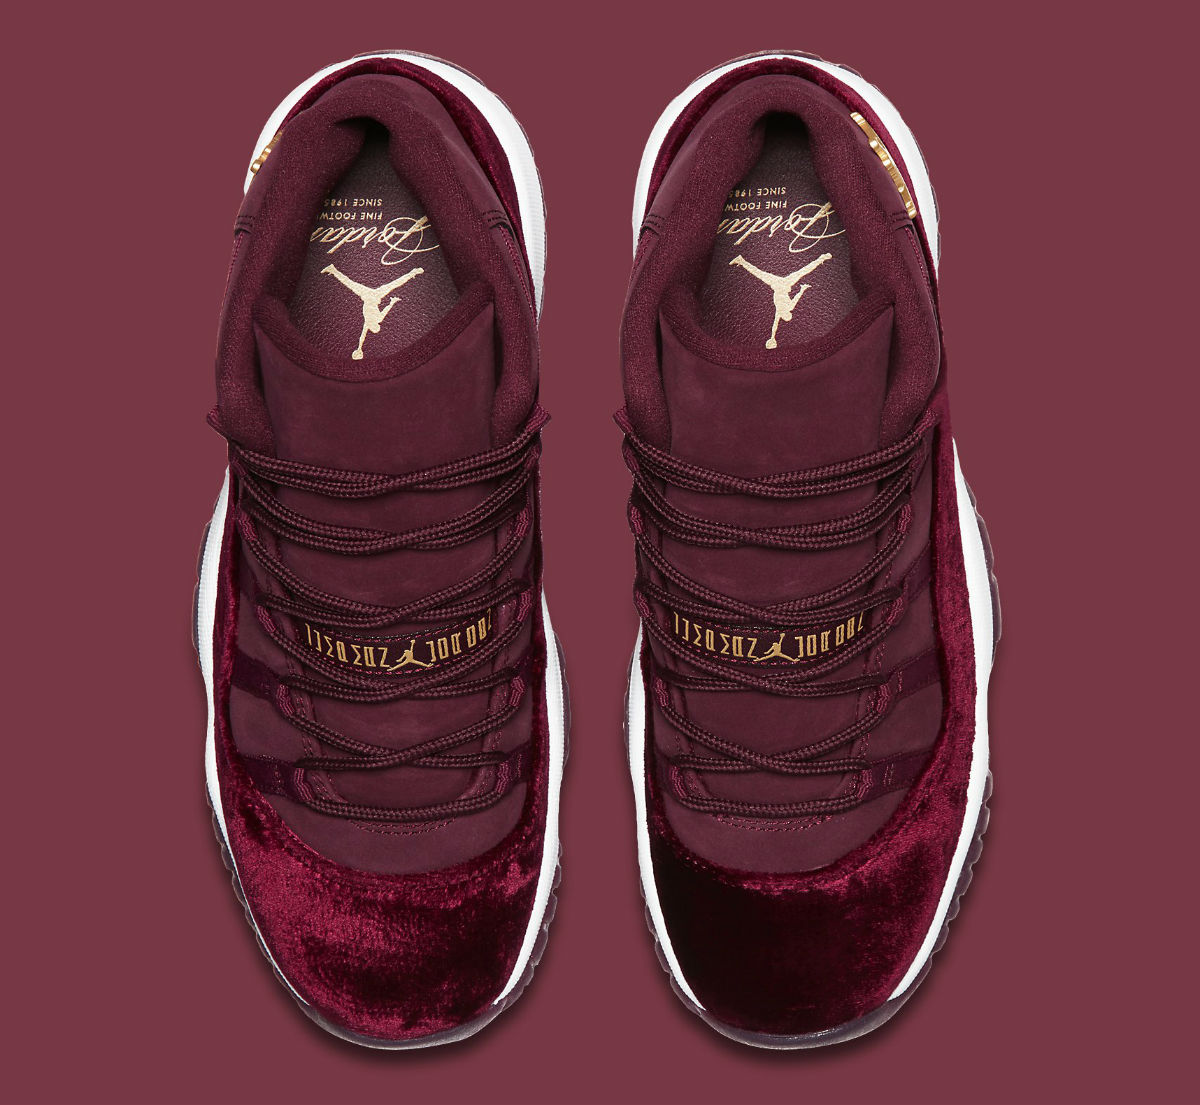 ce4ca4c1263 Air Jordan 11 GG Red Velvet Heiress Release Date Top 852625-650